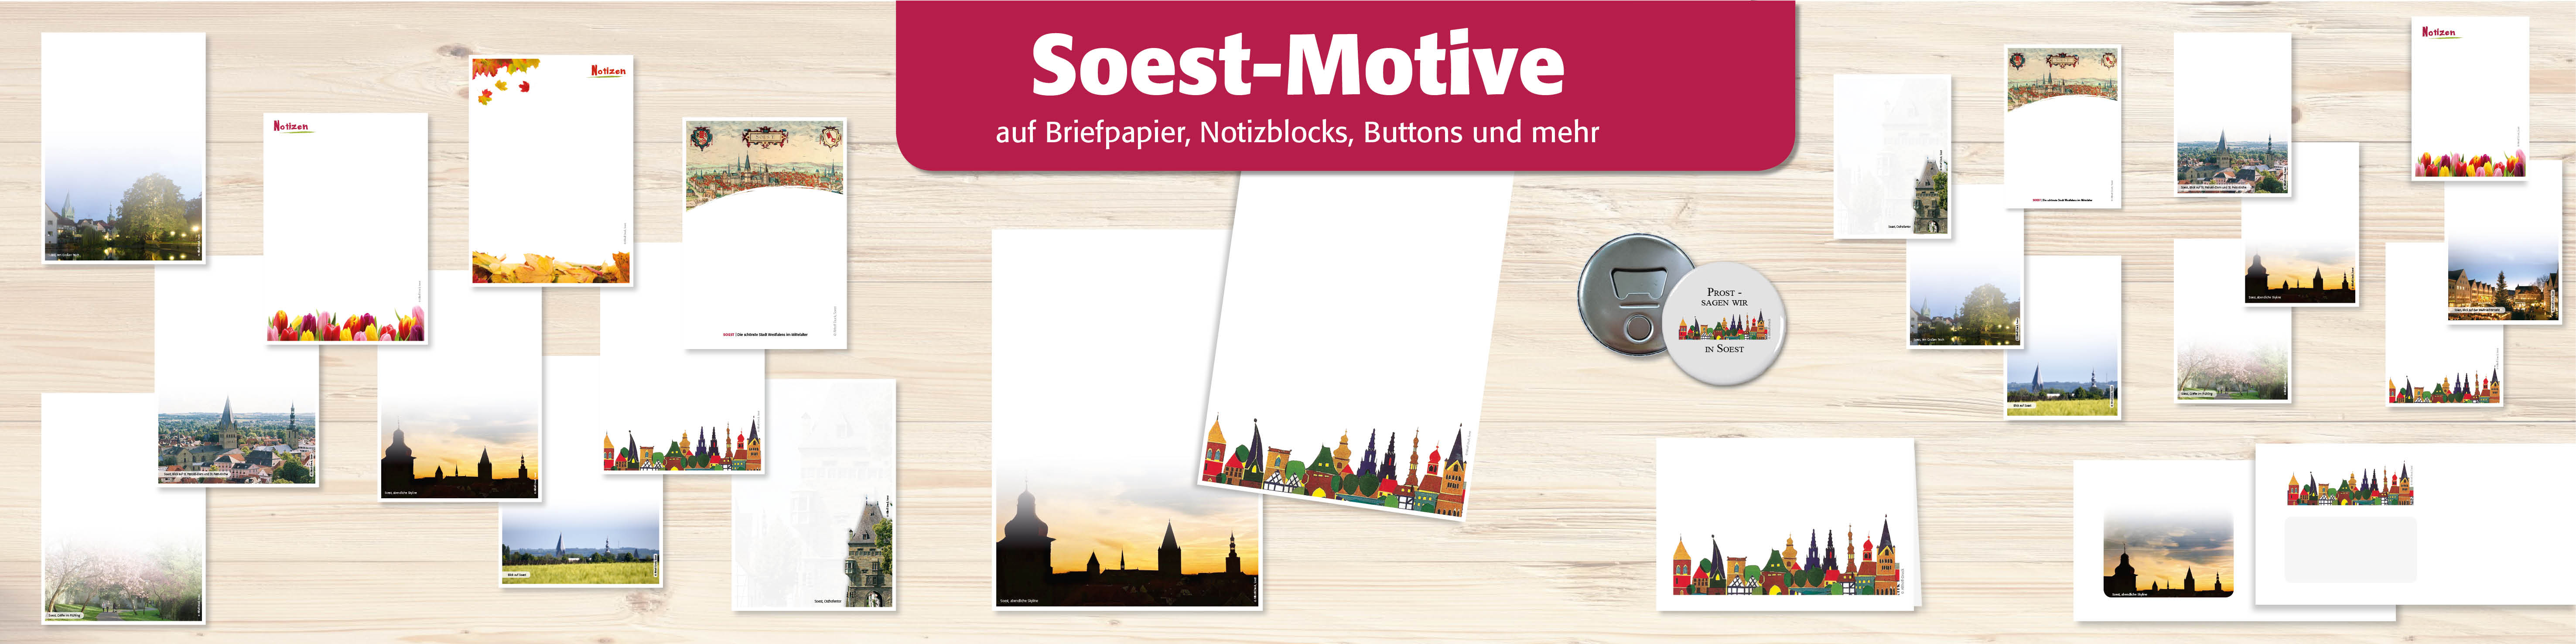 Website_Slider_Soest-Motive